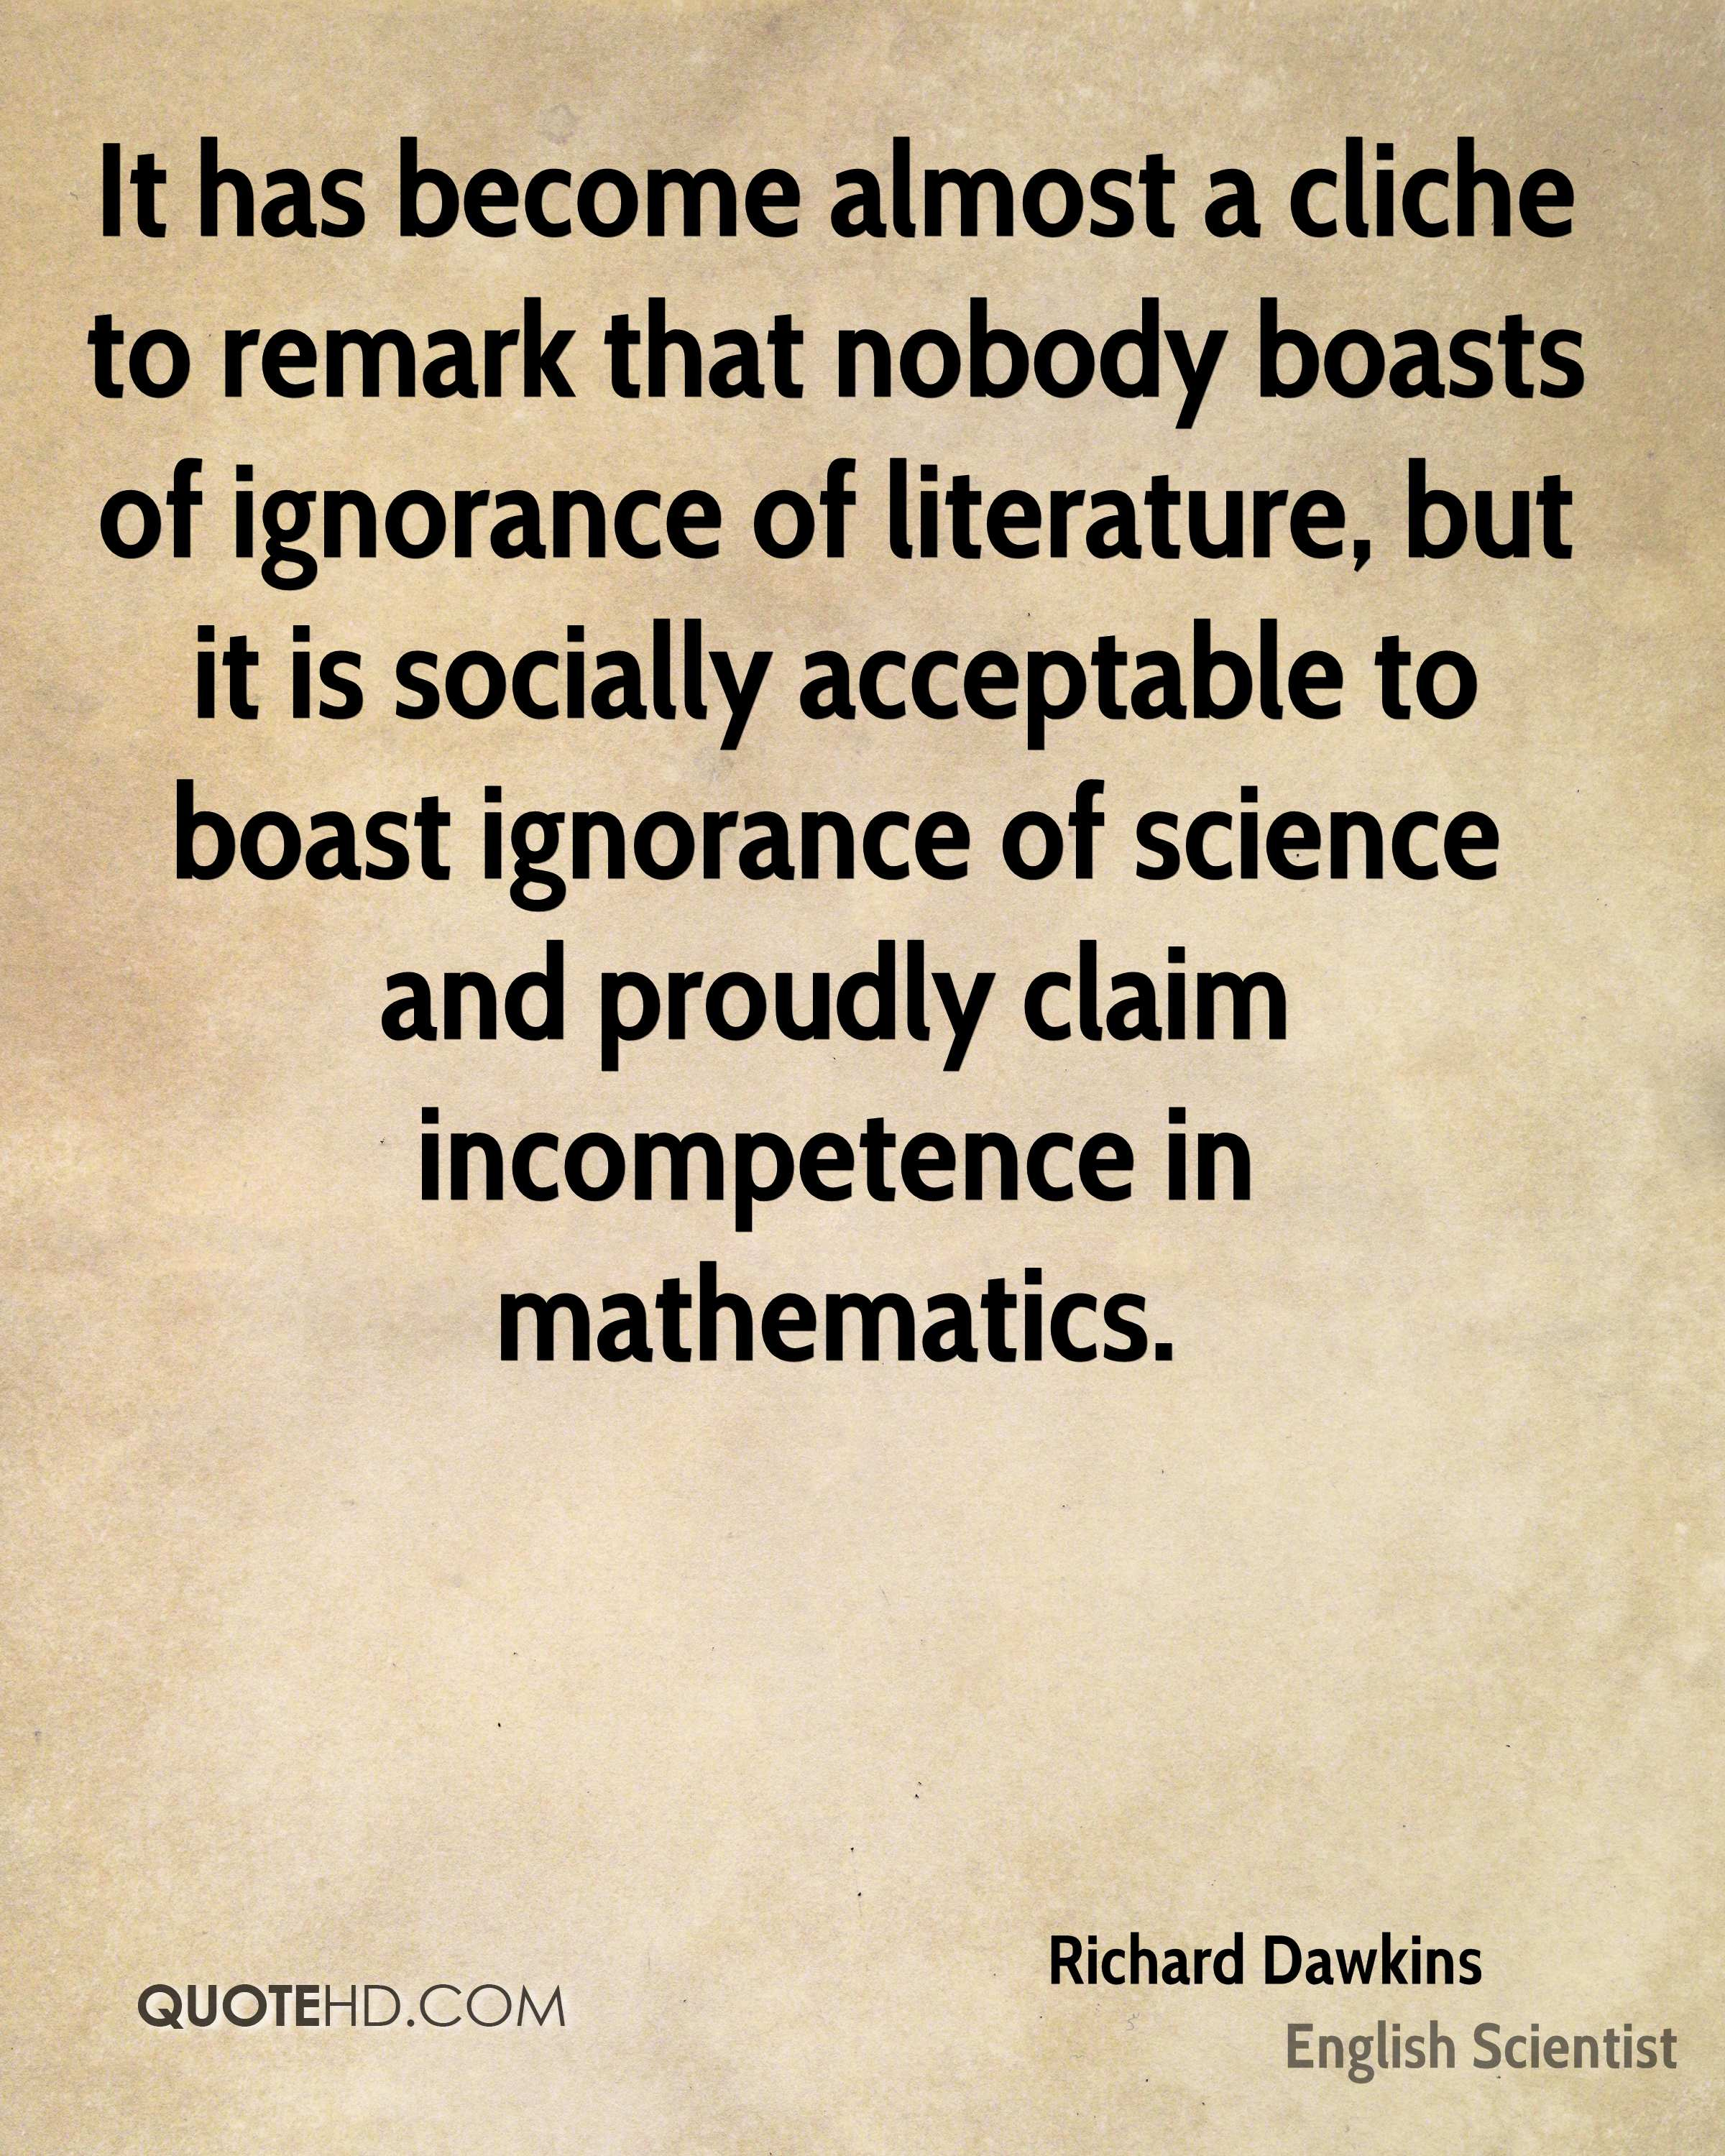 It has become almost a cliche to remark that nobody boasts of ignorance of literature, but it is socially acceptable to boast ignorance of science and proudly claim incompetence in mathematics.